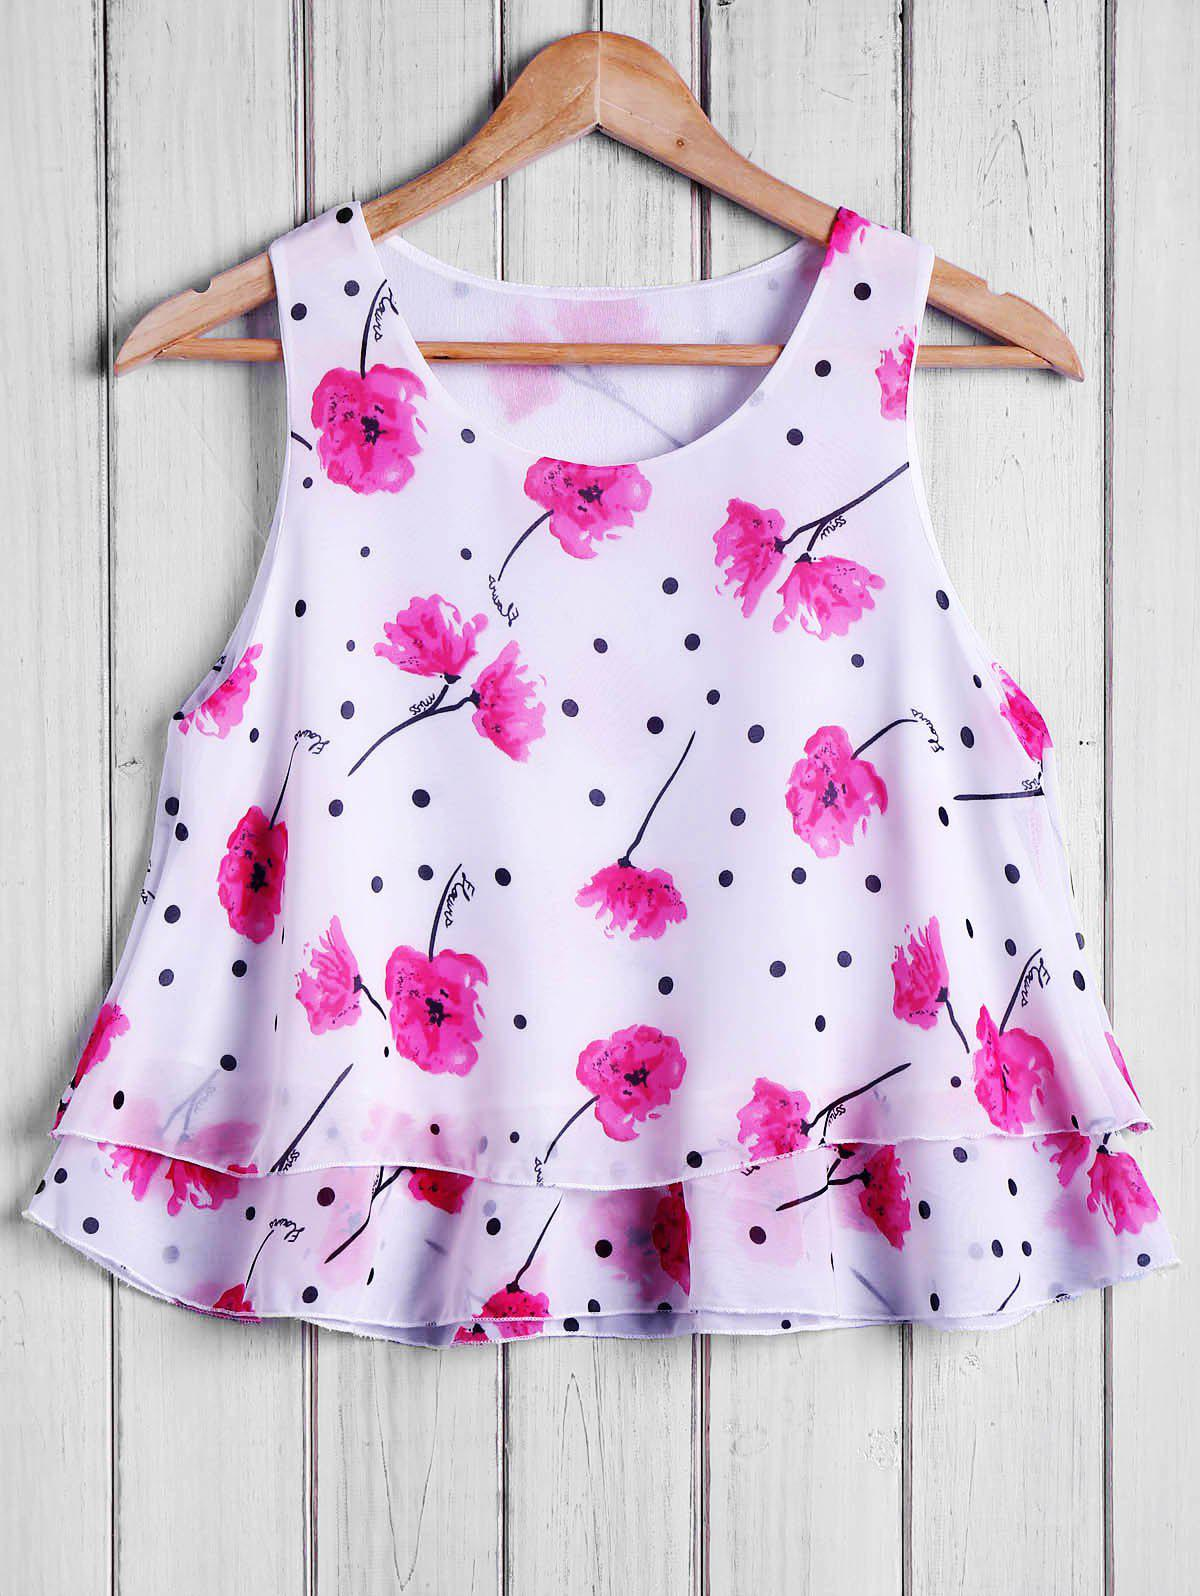 Stylish Round Collar Polka Dot Chiffon Floral Print Women's Tank Top